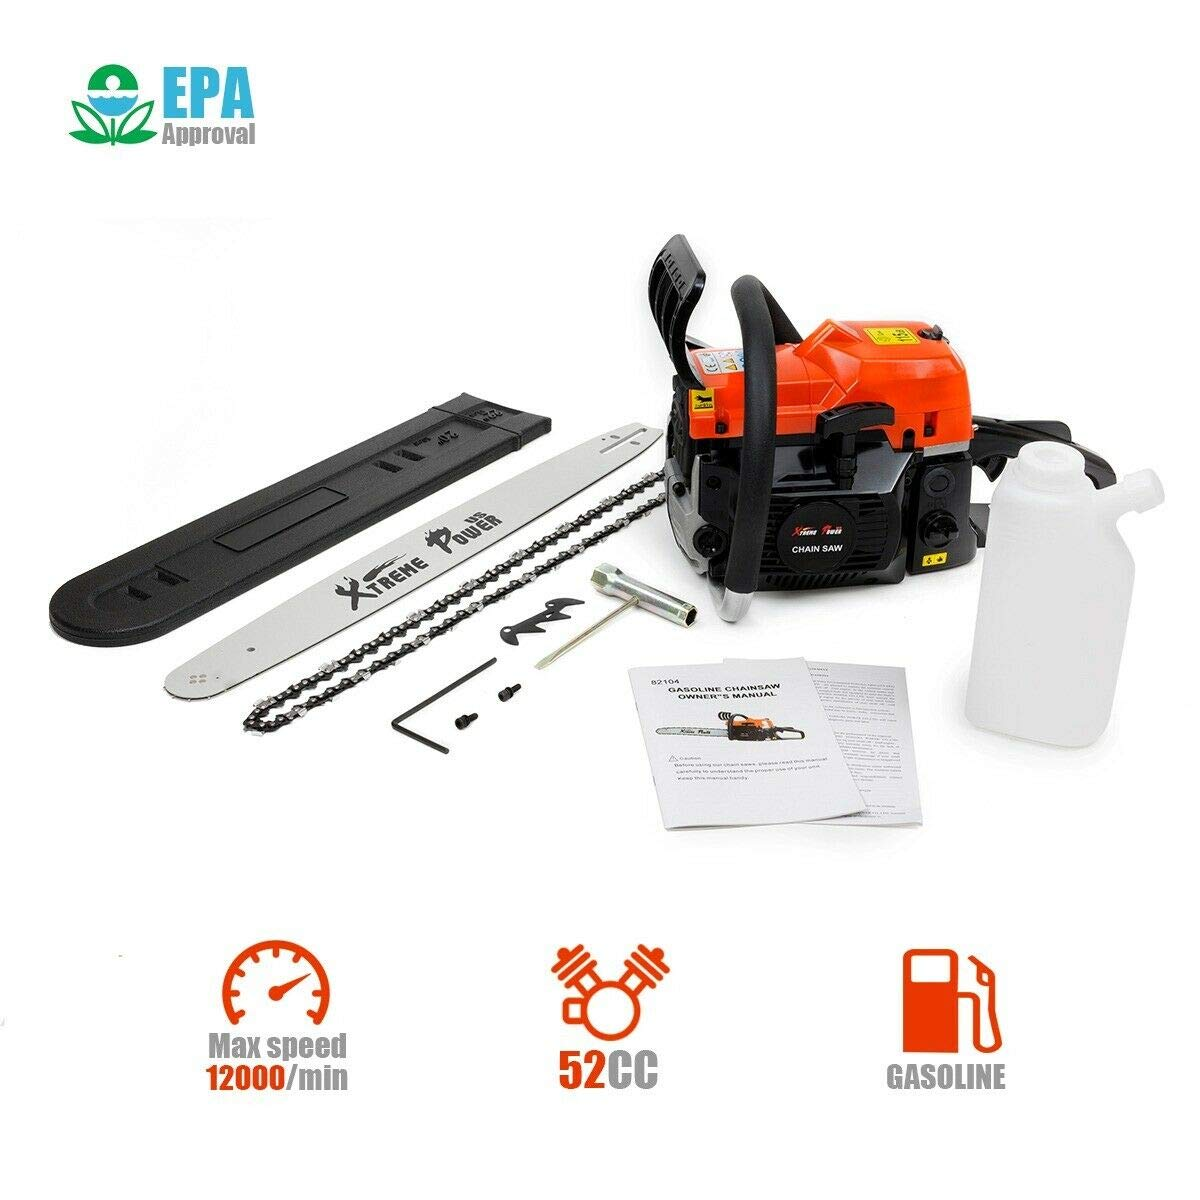 XtremepowerUS 52cc 2 Stroke Chainsaws product image 7